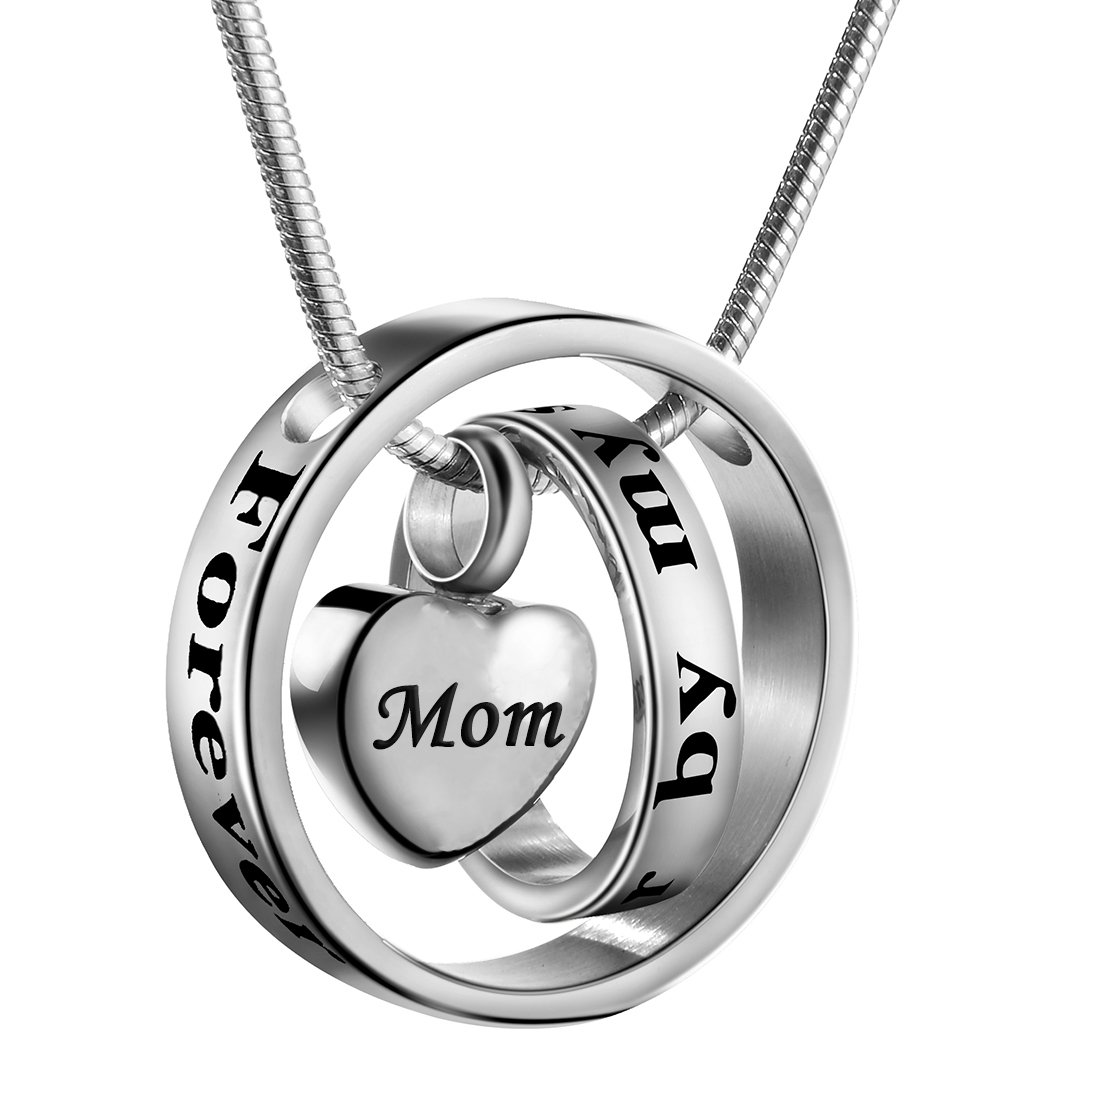 Cremation Jewelry No Longer by My Side, Forever in My Heart Carved Locket Cremation Urn Memorial Necklace Keepsake Urn Pendant for Dad (Mom)